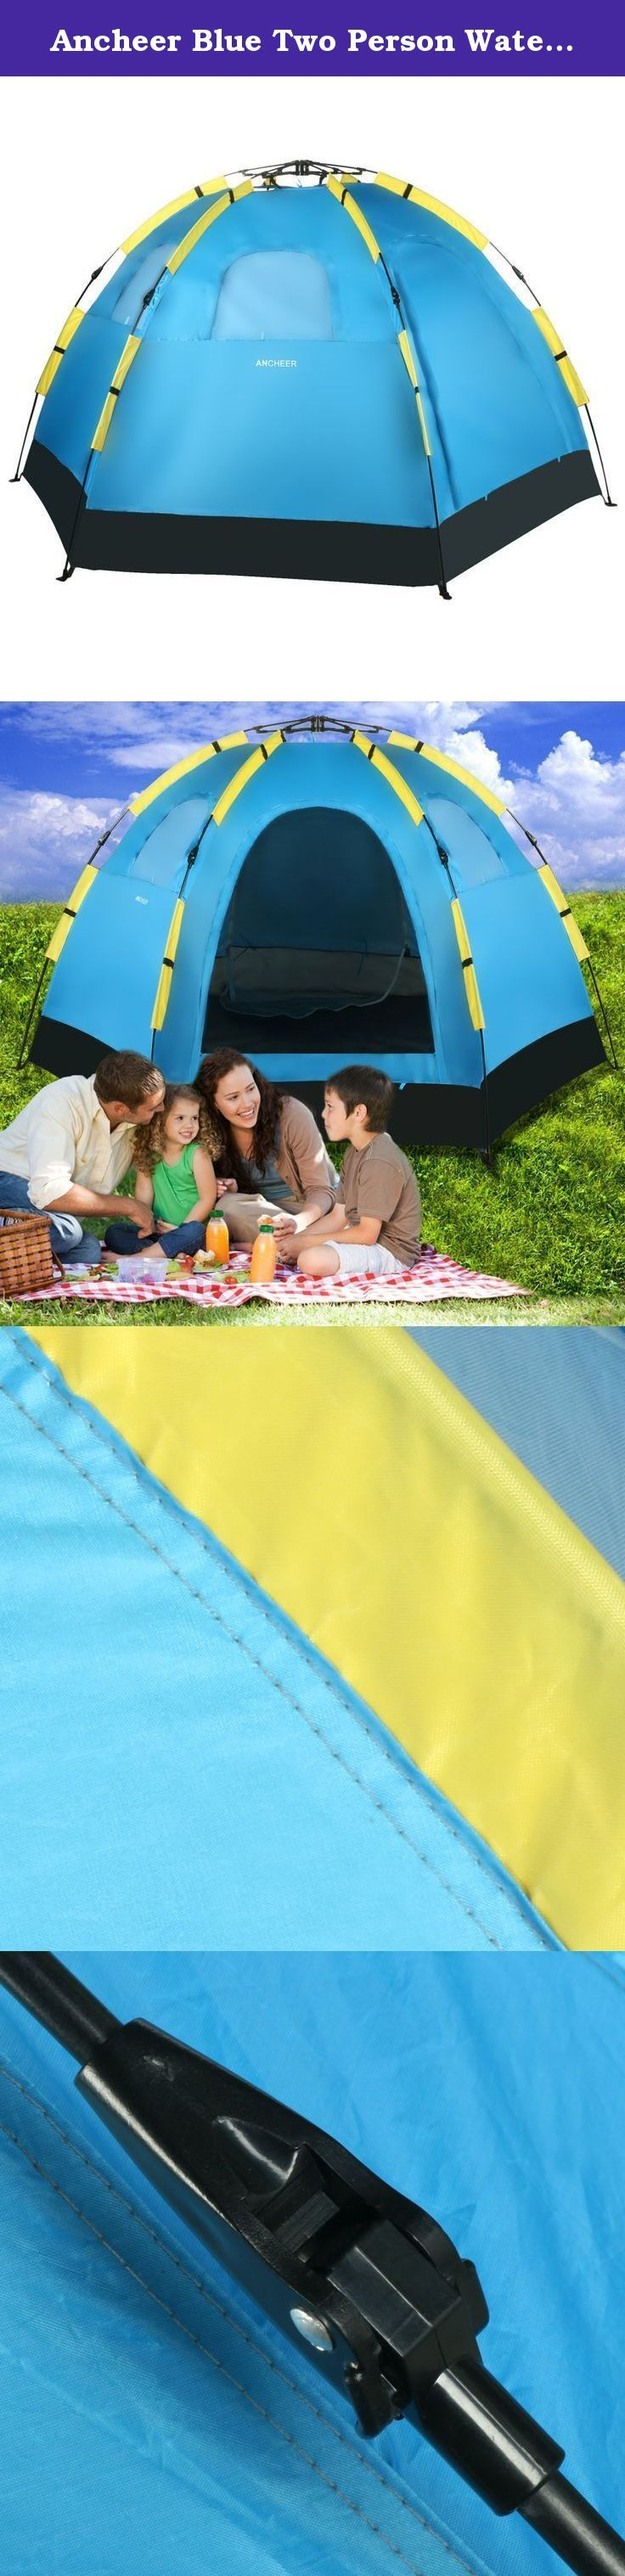 Ancheer Blue Two Person Waterproof Automatic Pop Up Portable Camping Hiking Tent With Carry Bag. --100% Brand New. --Brand: Ancheer --Tent Material: 190T Polyester --Base Material: 210D Oxford --Pole Material: Carbon Fiber --Color: Blue --Size: 138 x 138 x 145cm/ 53.8 x 53.8 x 56.6inch (L x W x H) --Door Size: 117 x 96cm/ 45.6 x 37.4inch (H x W) --Folding Size: 112 x 15.5cm/ 43.7 x 6.0inch (L x D) --Closure Type: Zipper --Door Quantity: 2 --Window Quantity: 3 --Feature: Automatic Pop Up...